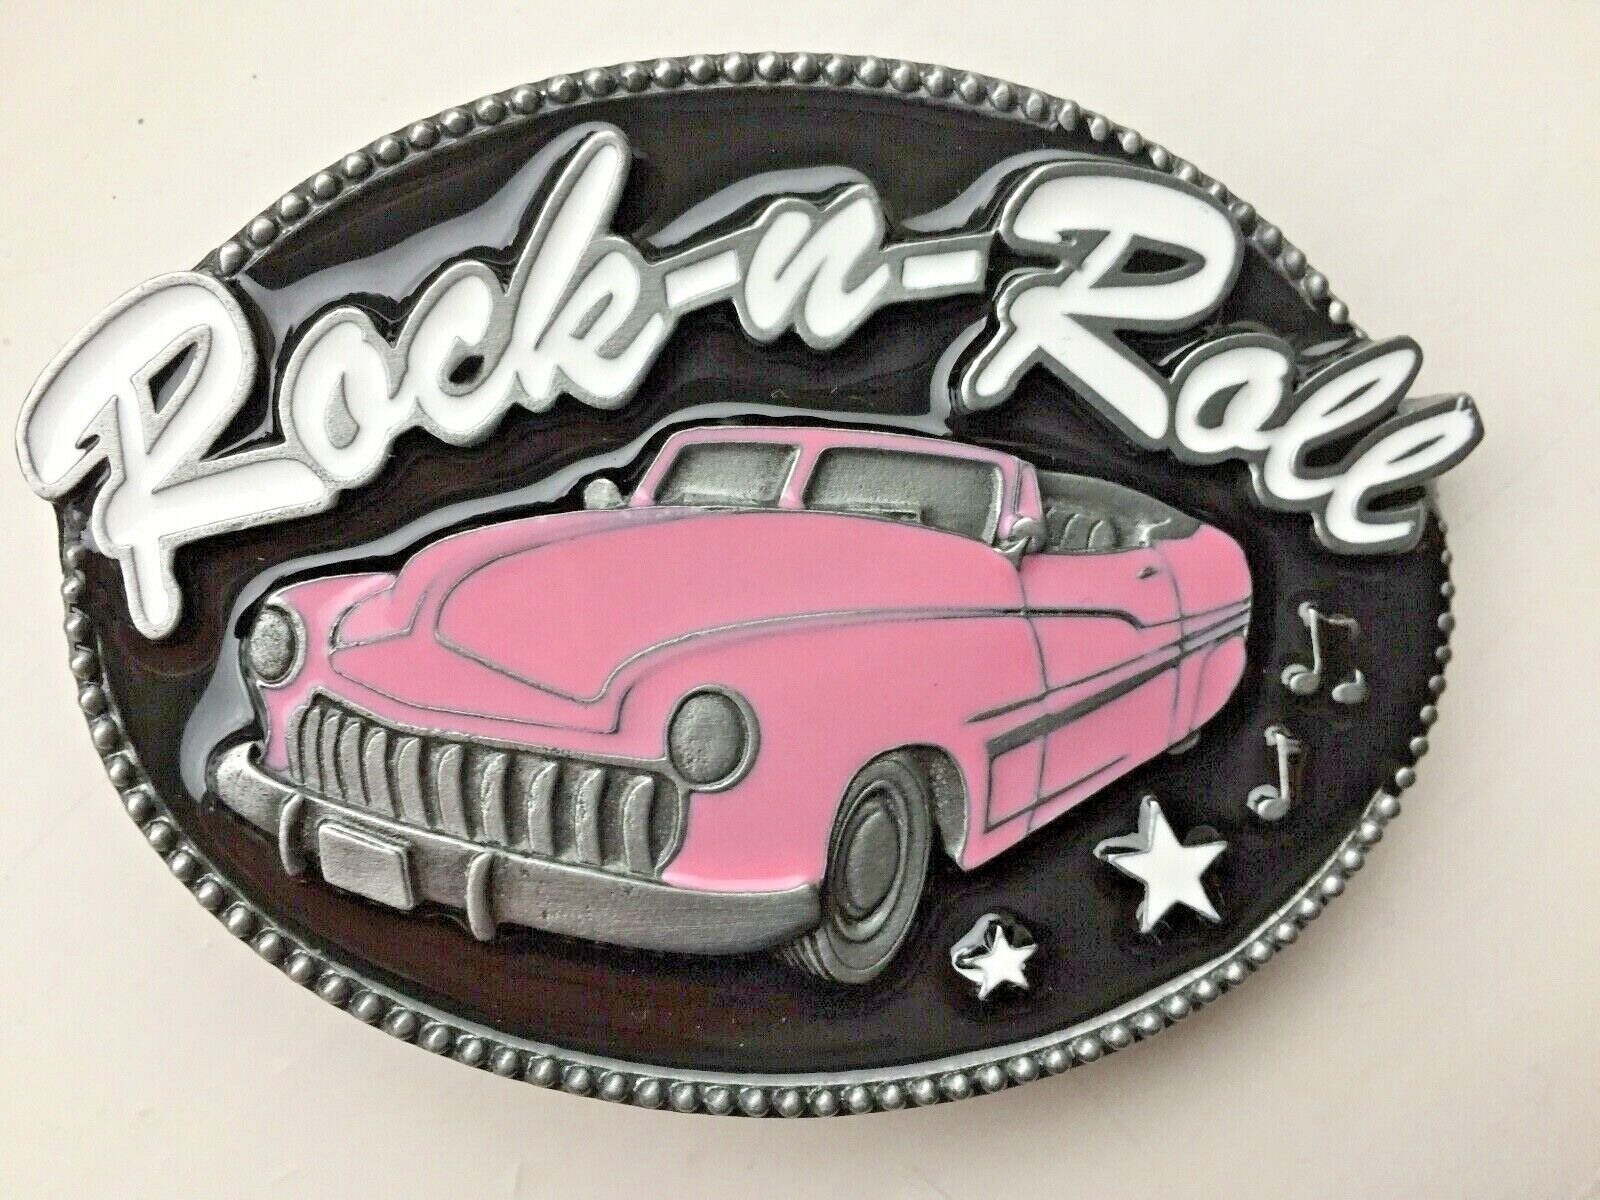 Rock and roll belt buckle.USA car